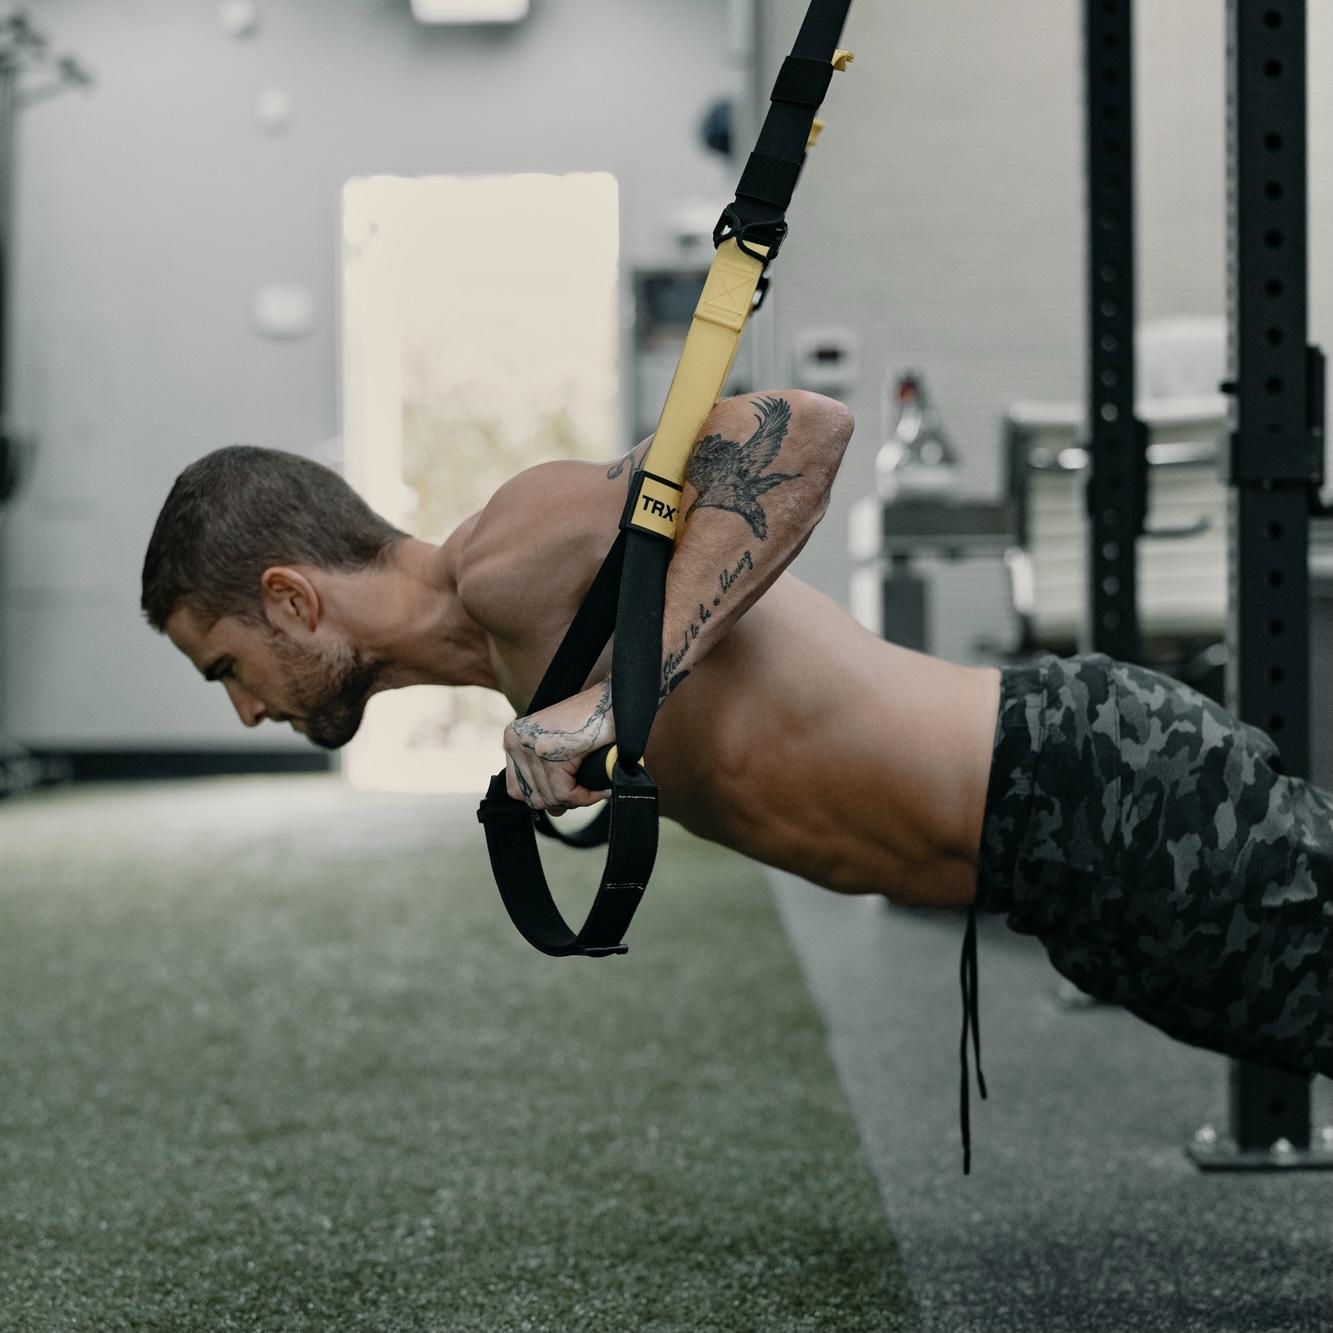 TRX Workout: 4